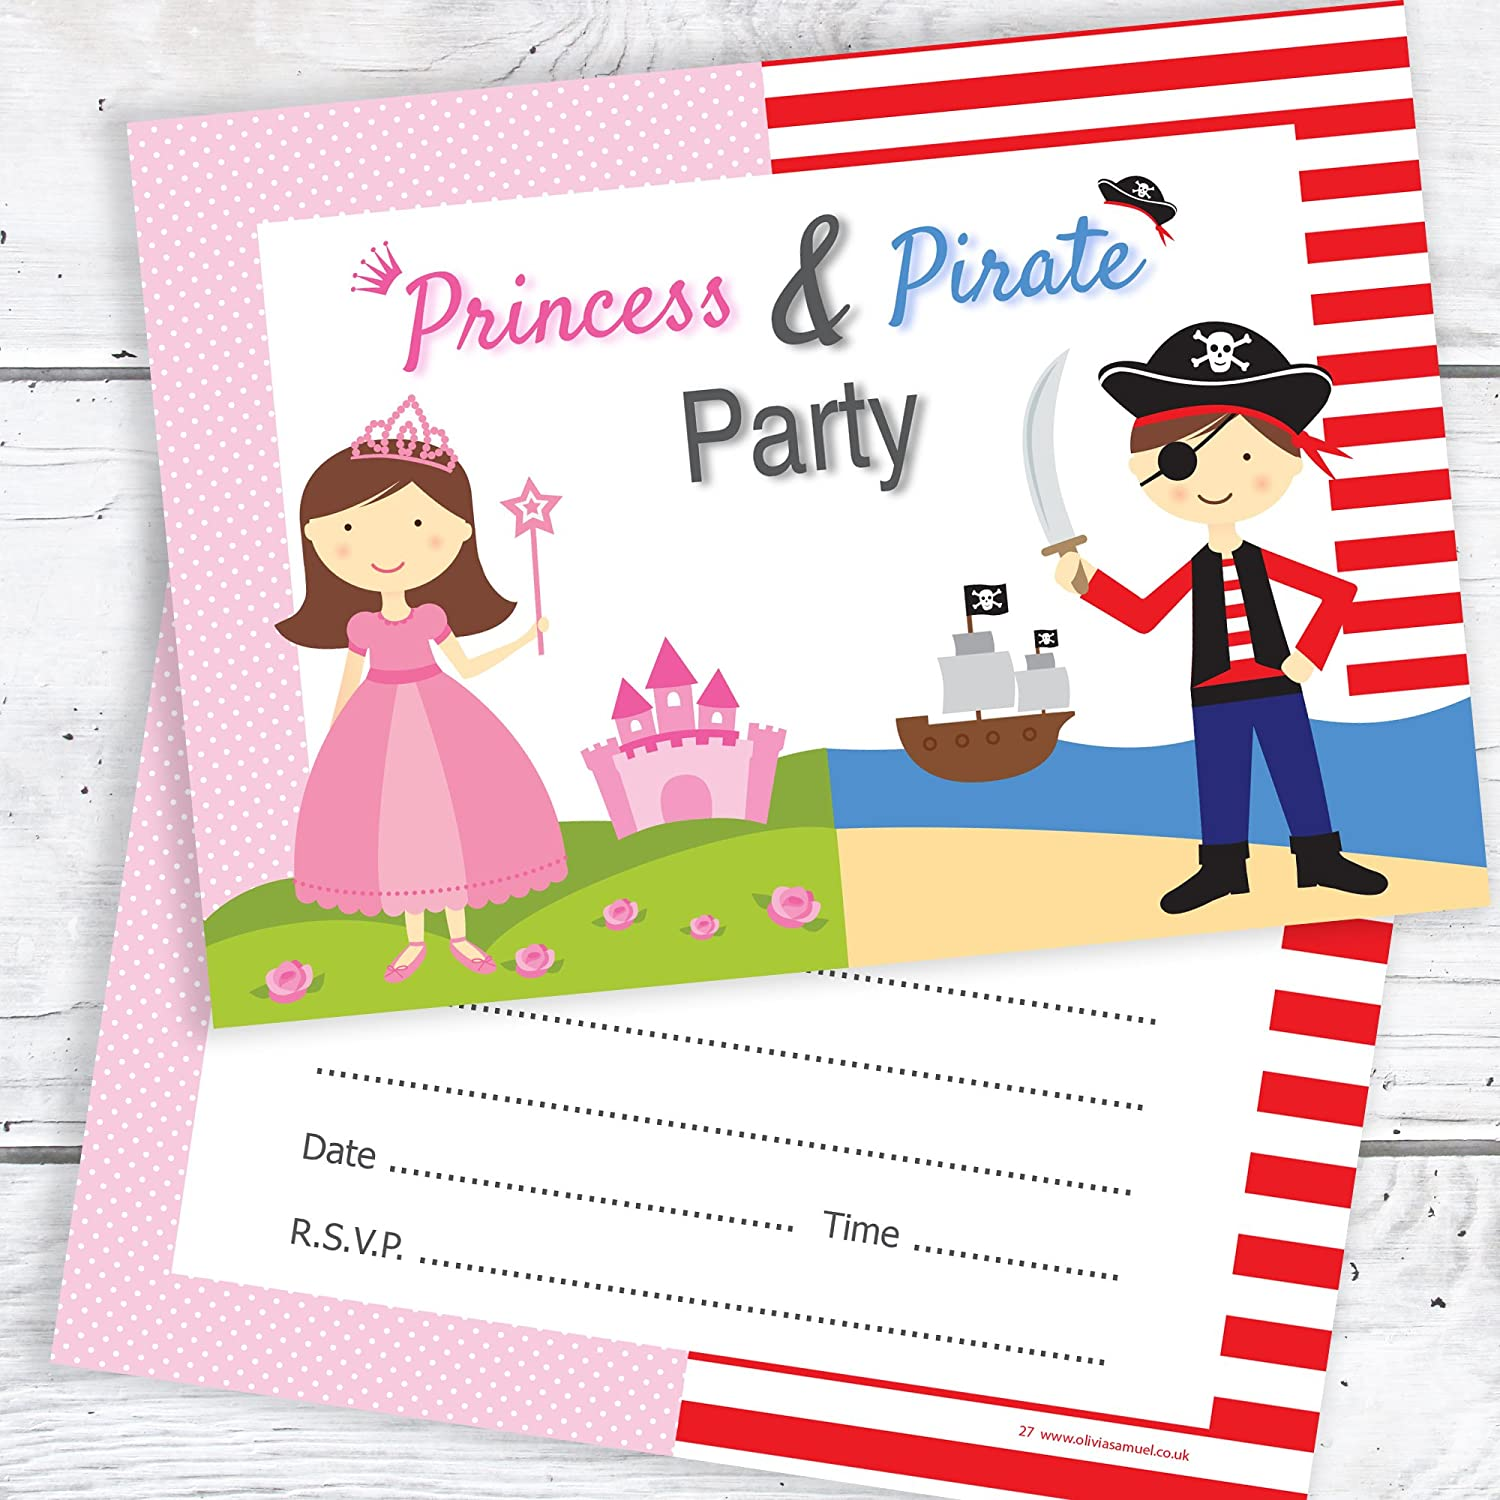 Princess & Pirate Birthday Party Invitations - Kids Fancy Dress Party Invites - A6 Postcard Size with envelopes (Pack of 10) Olivia Samuel